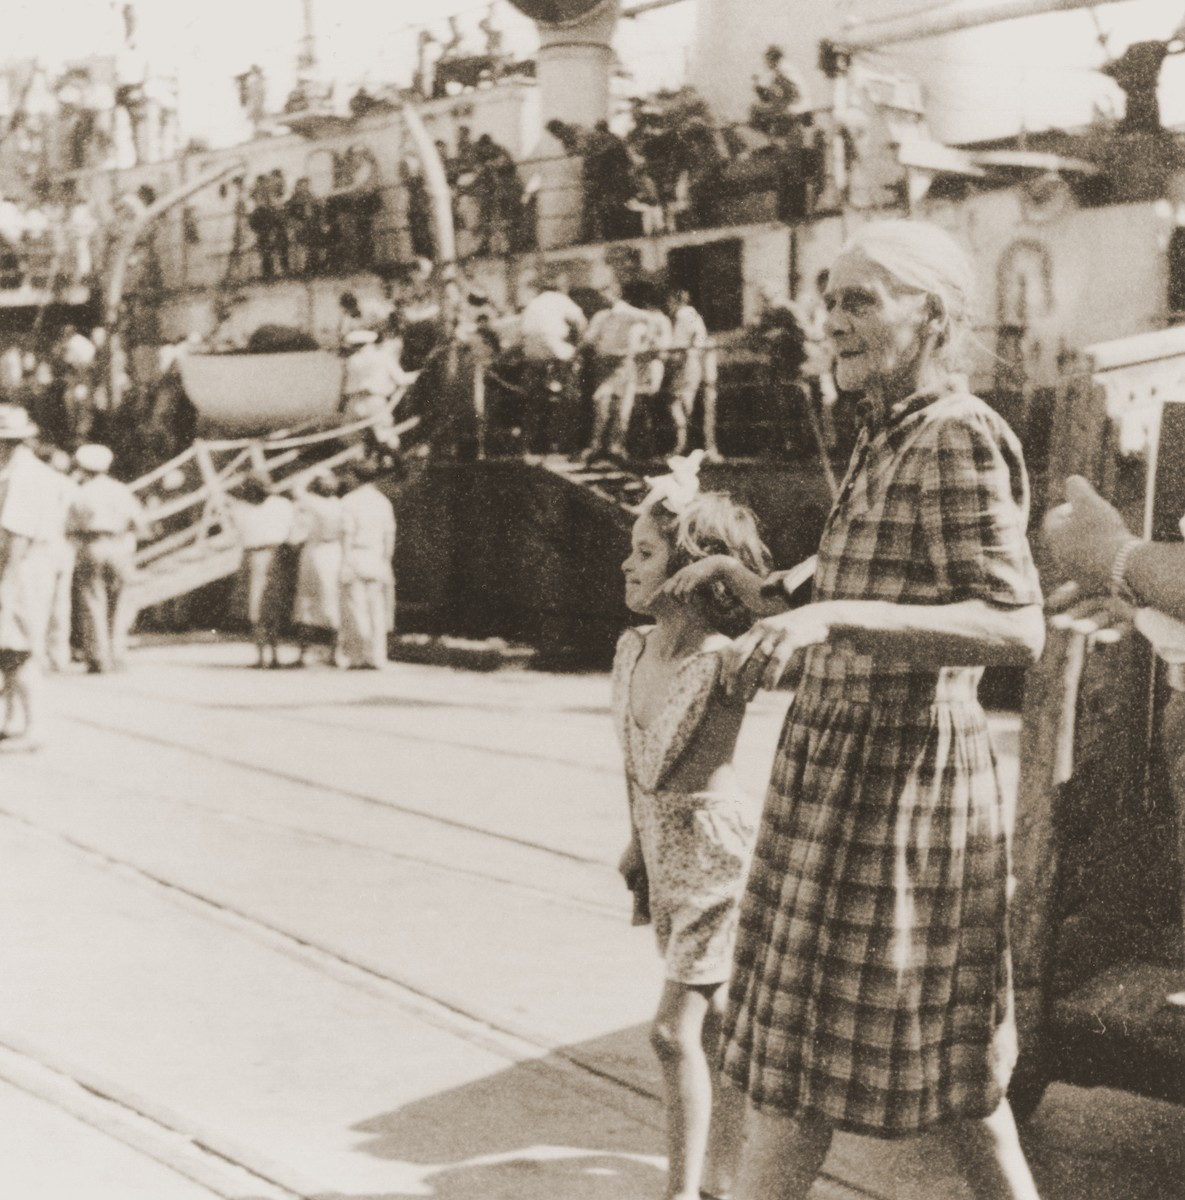 An elderly woman and her granddaughter, who have just arrived in Haifa on board the Mala immigrant ship, walk along the pier.